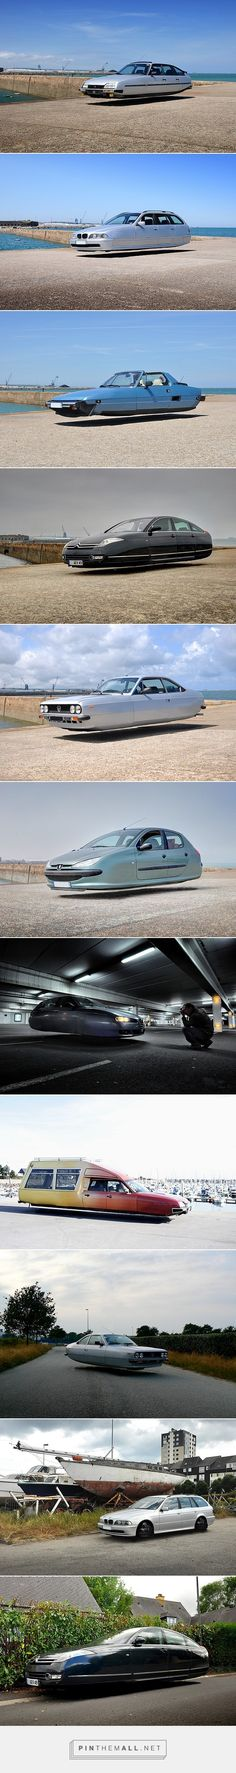 Flying cars on Behance